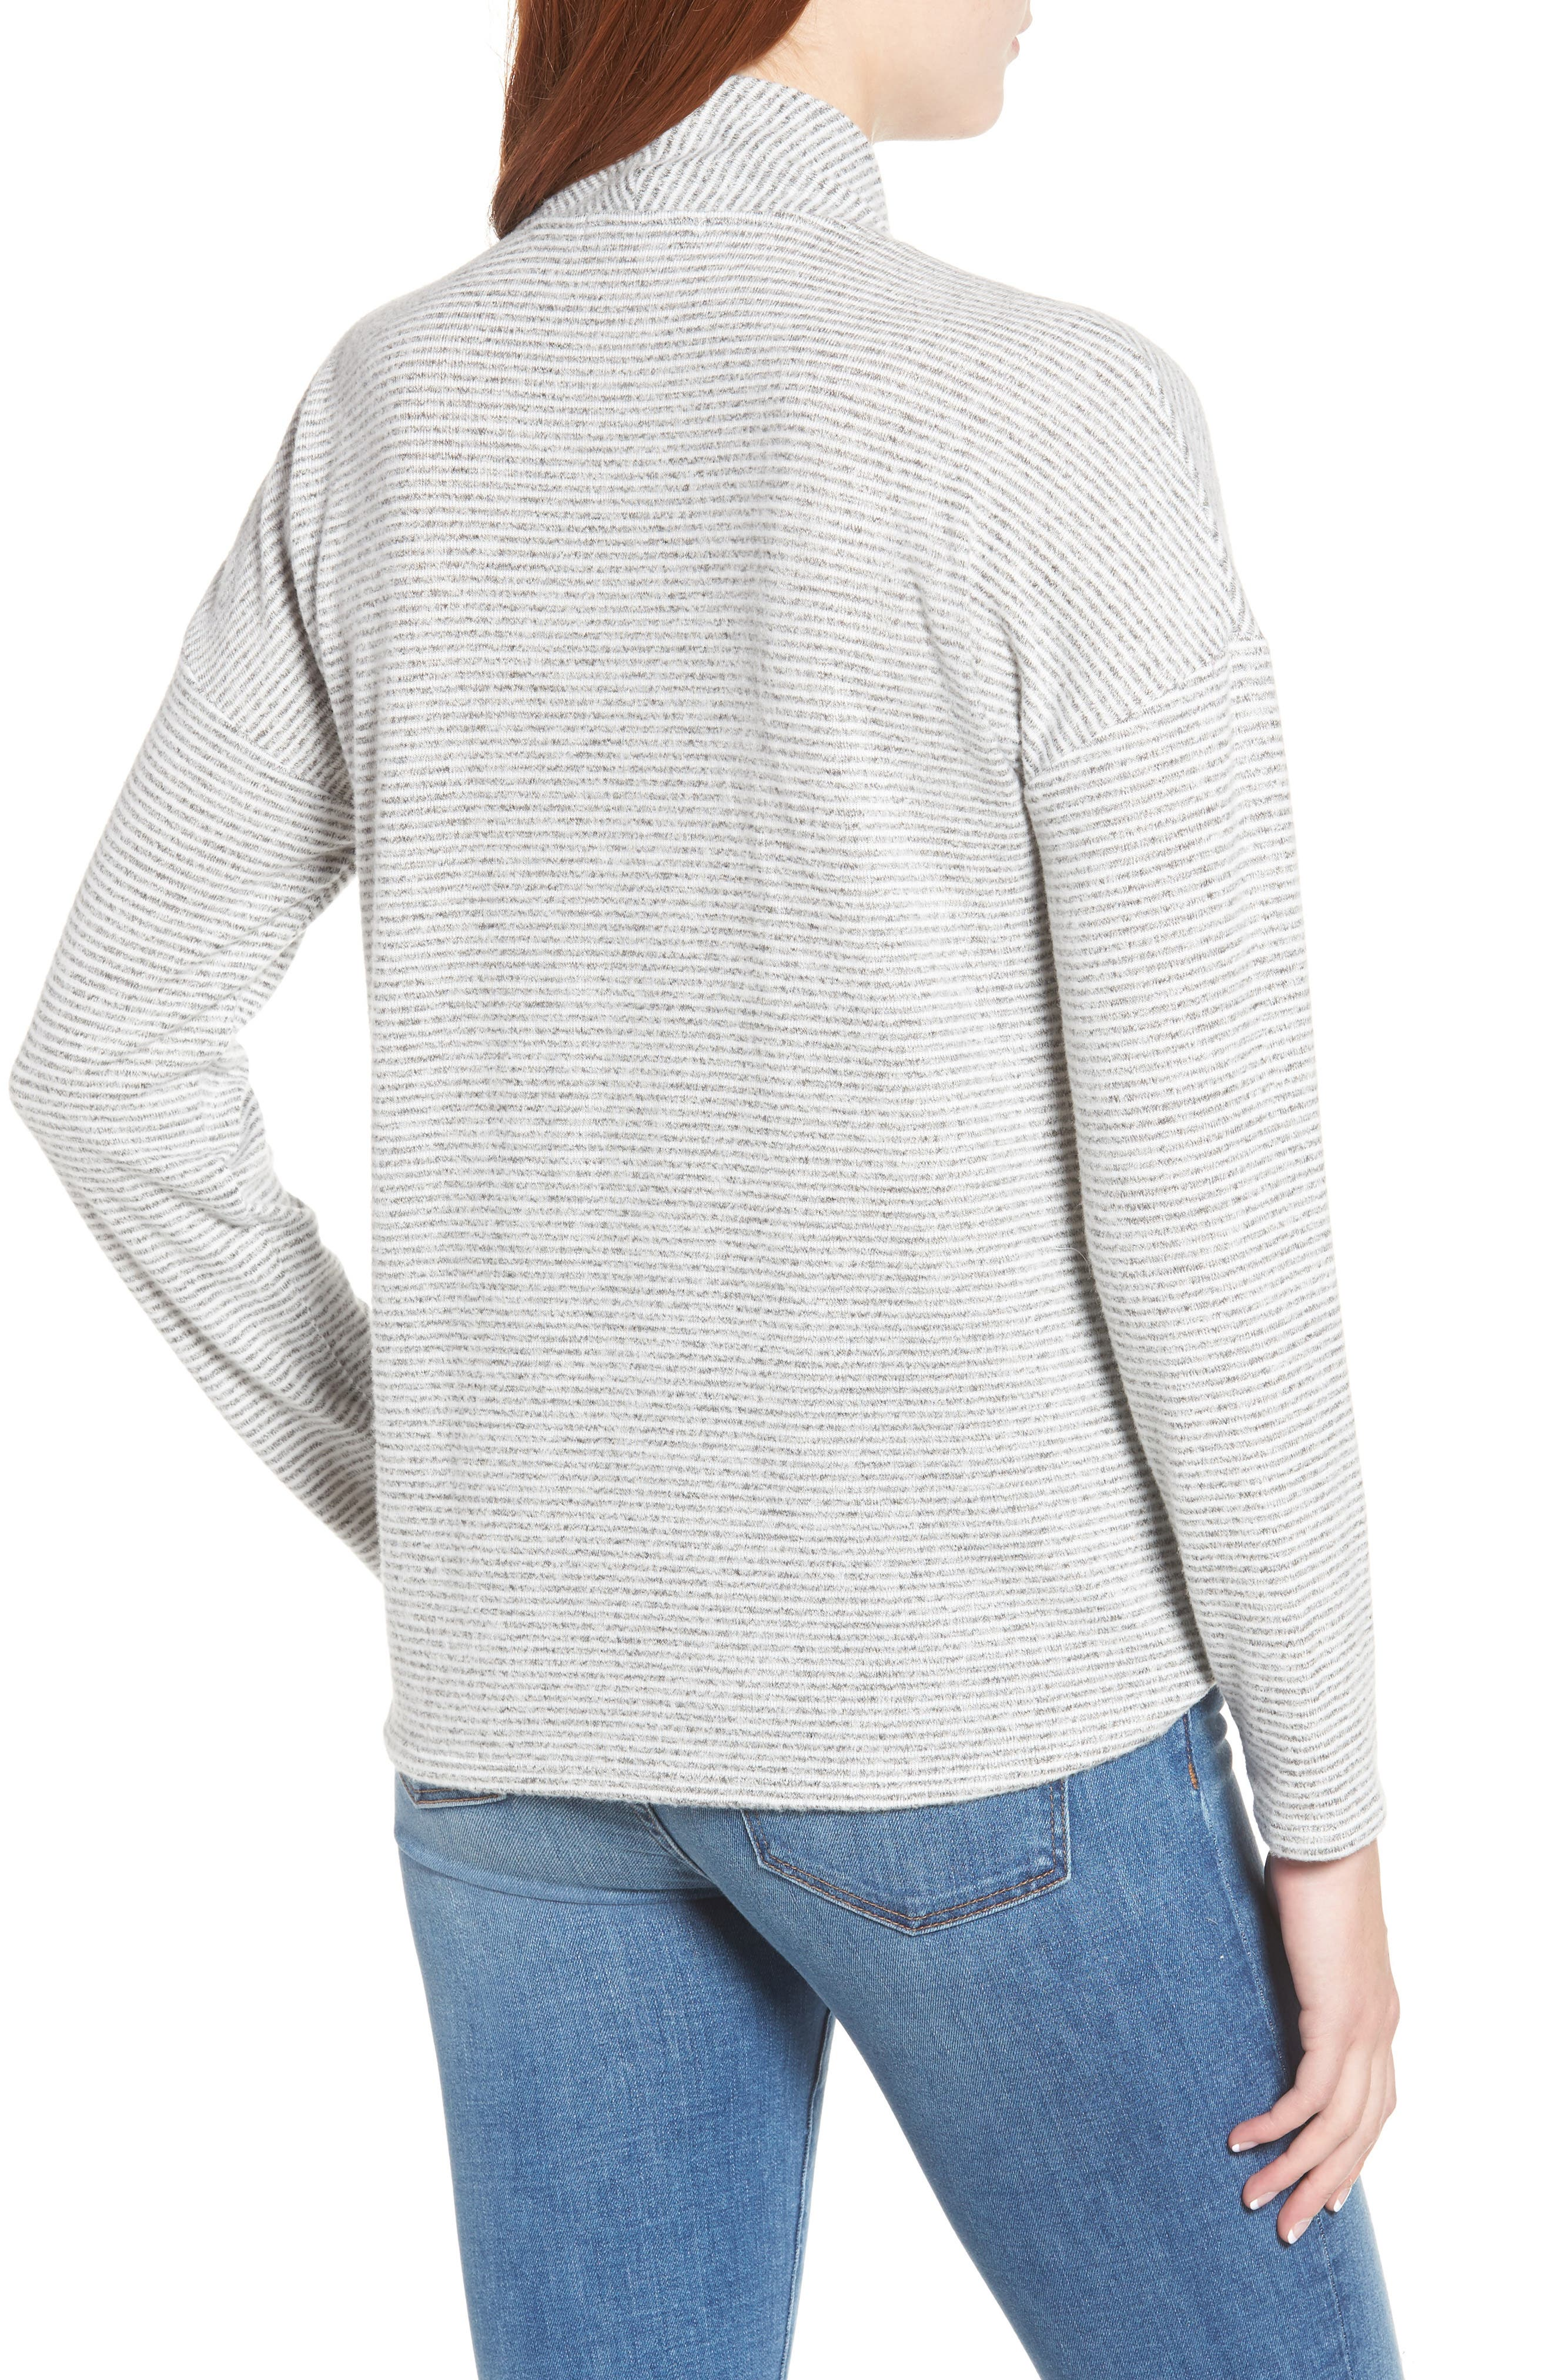 GIBSON,                             x Living in Yellow Diana Cozy Knit Wrap Top,                             Alternate thumbnail 2, color,                             GREY/ IVORY